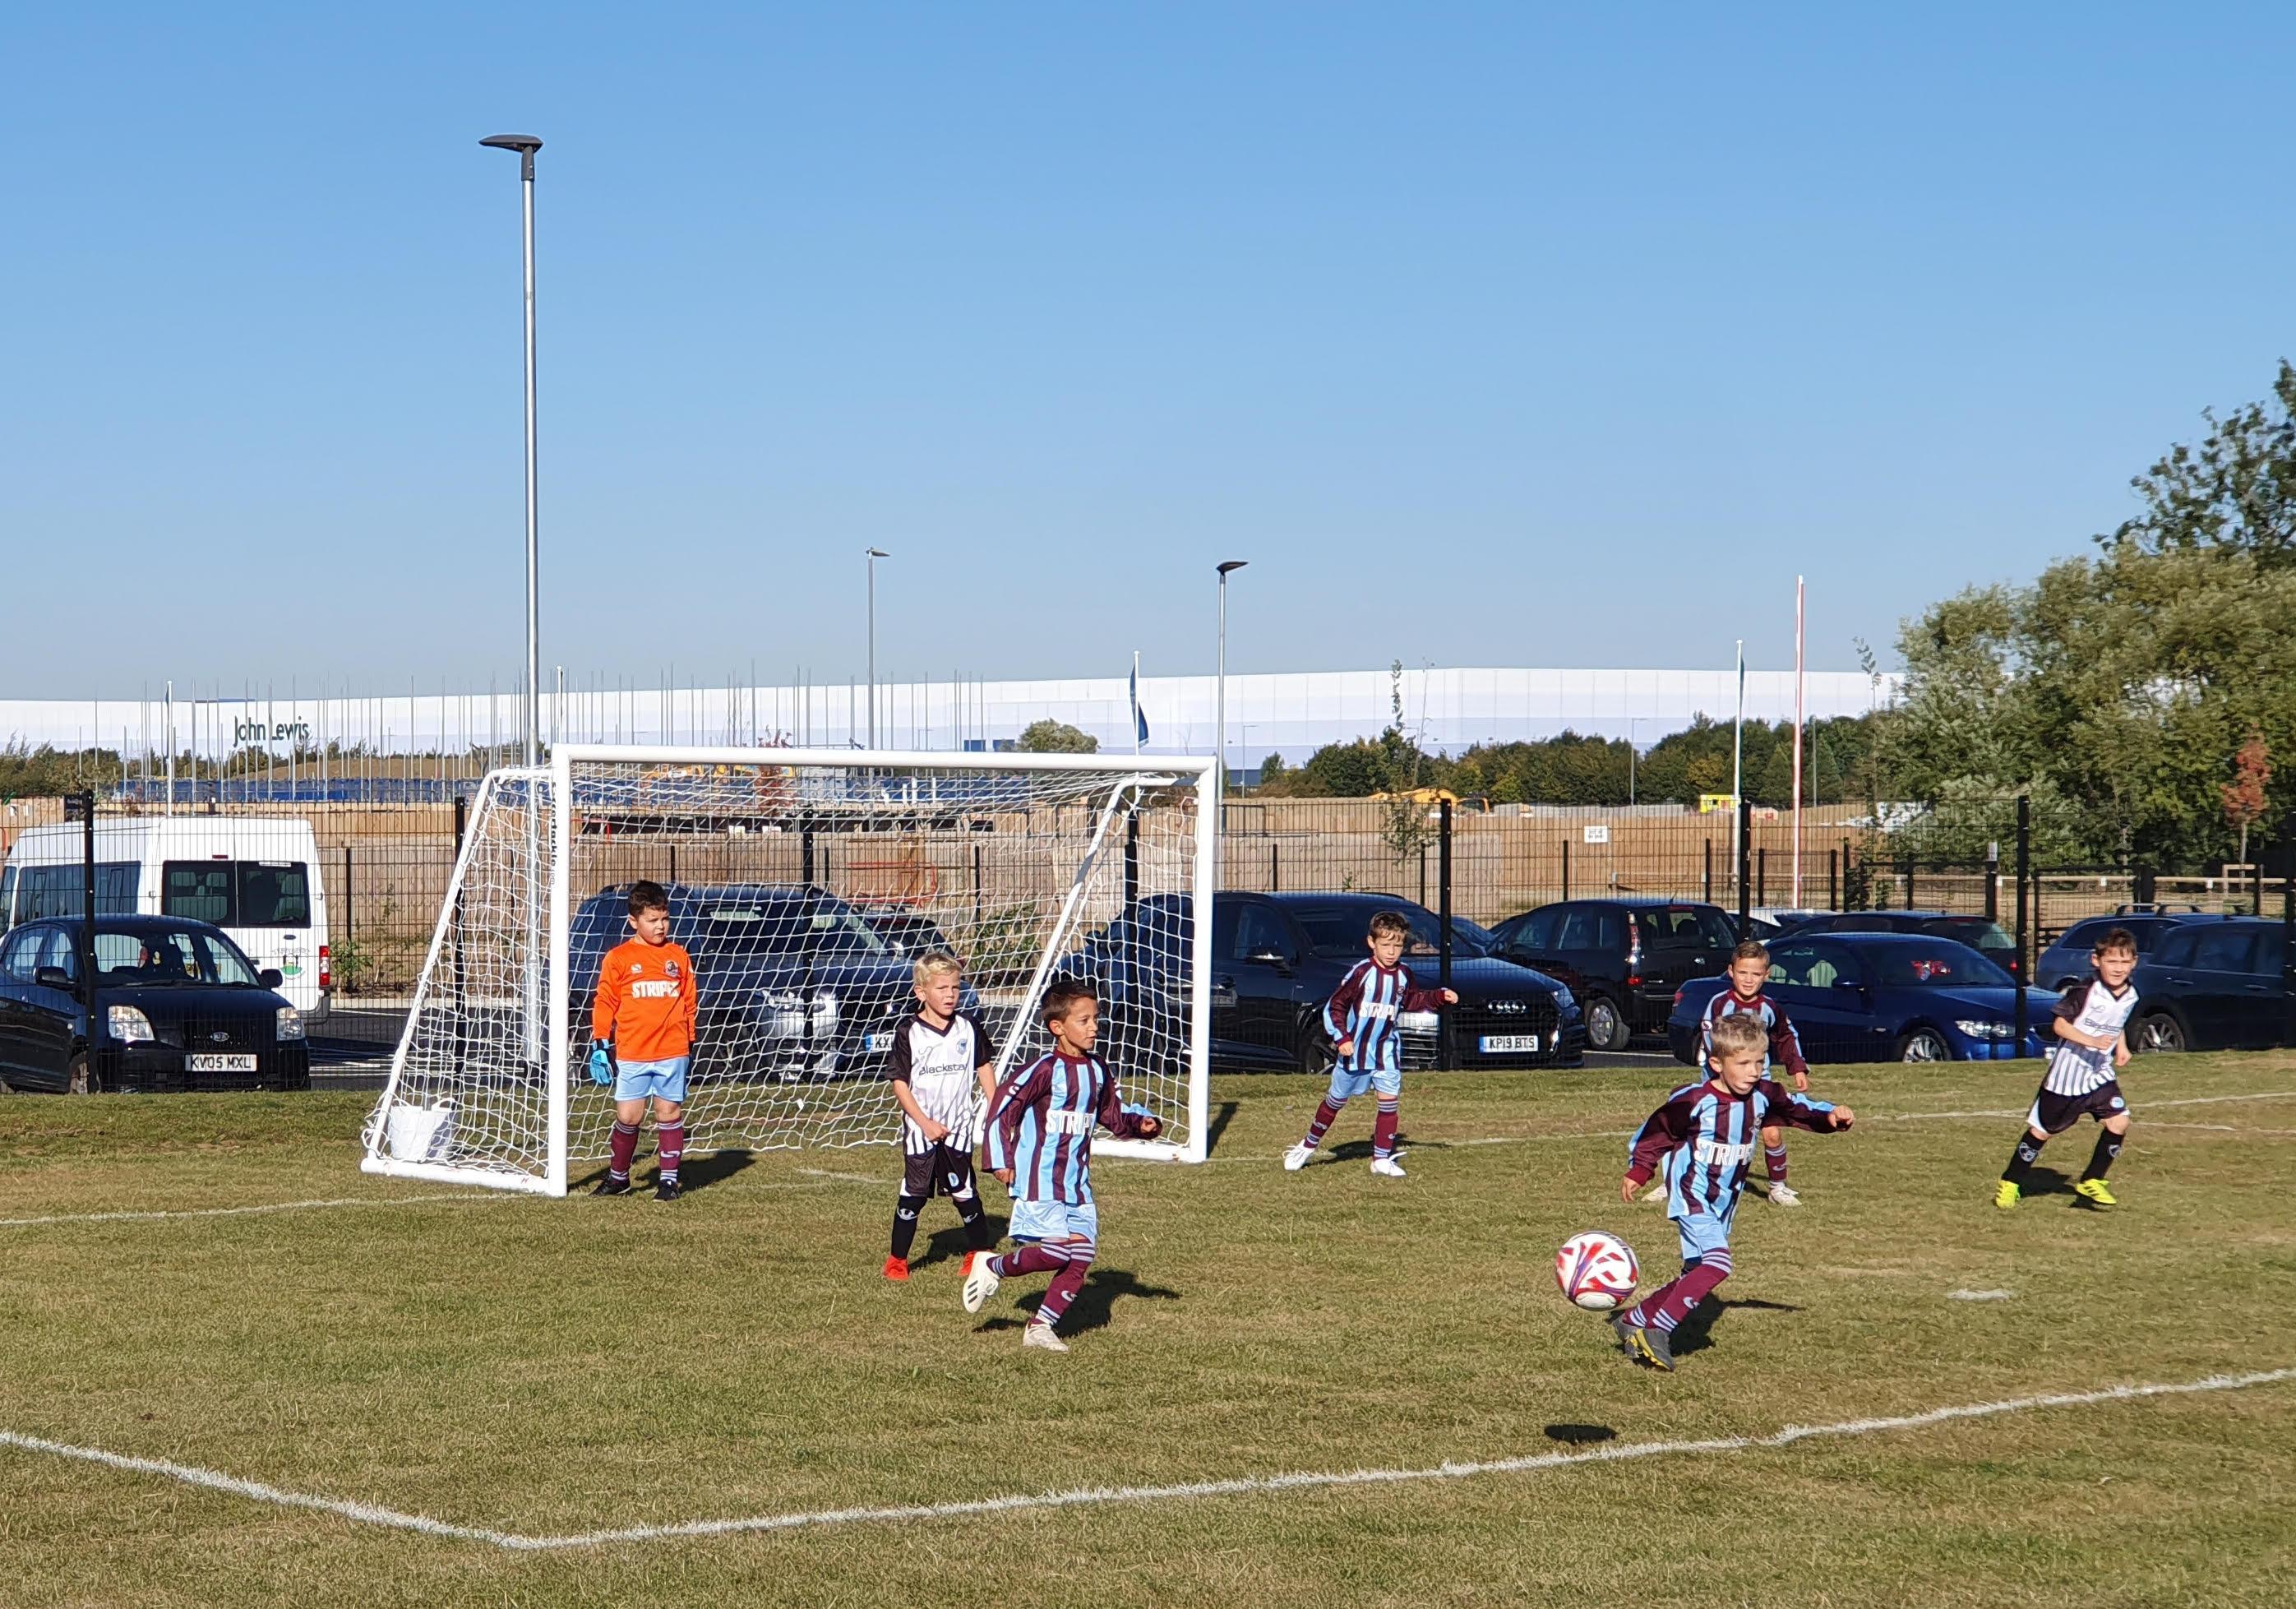 The Under 7 Whirlwinds were the first WWFC team to KO at our newest site! post thumbnail image